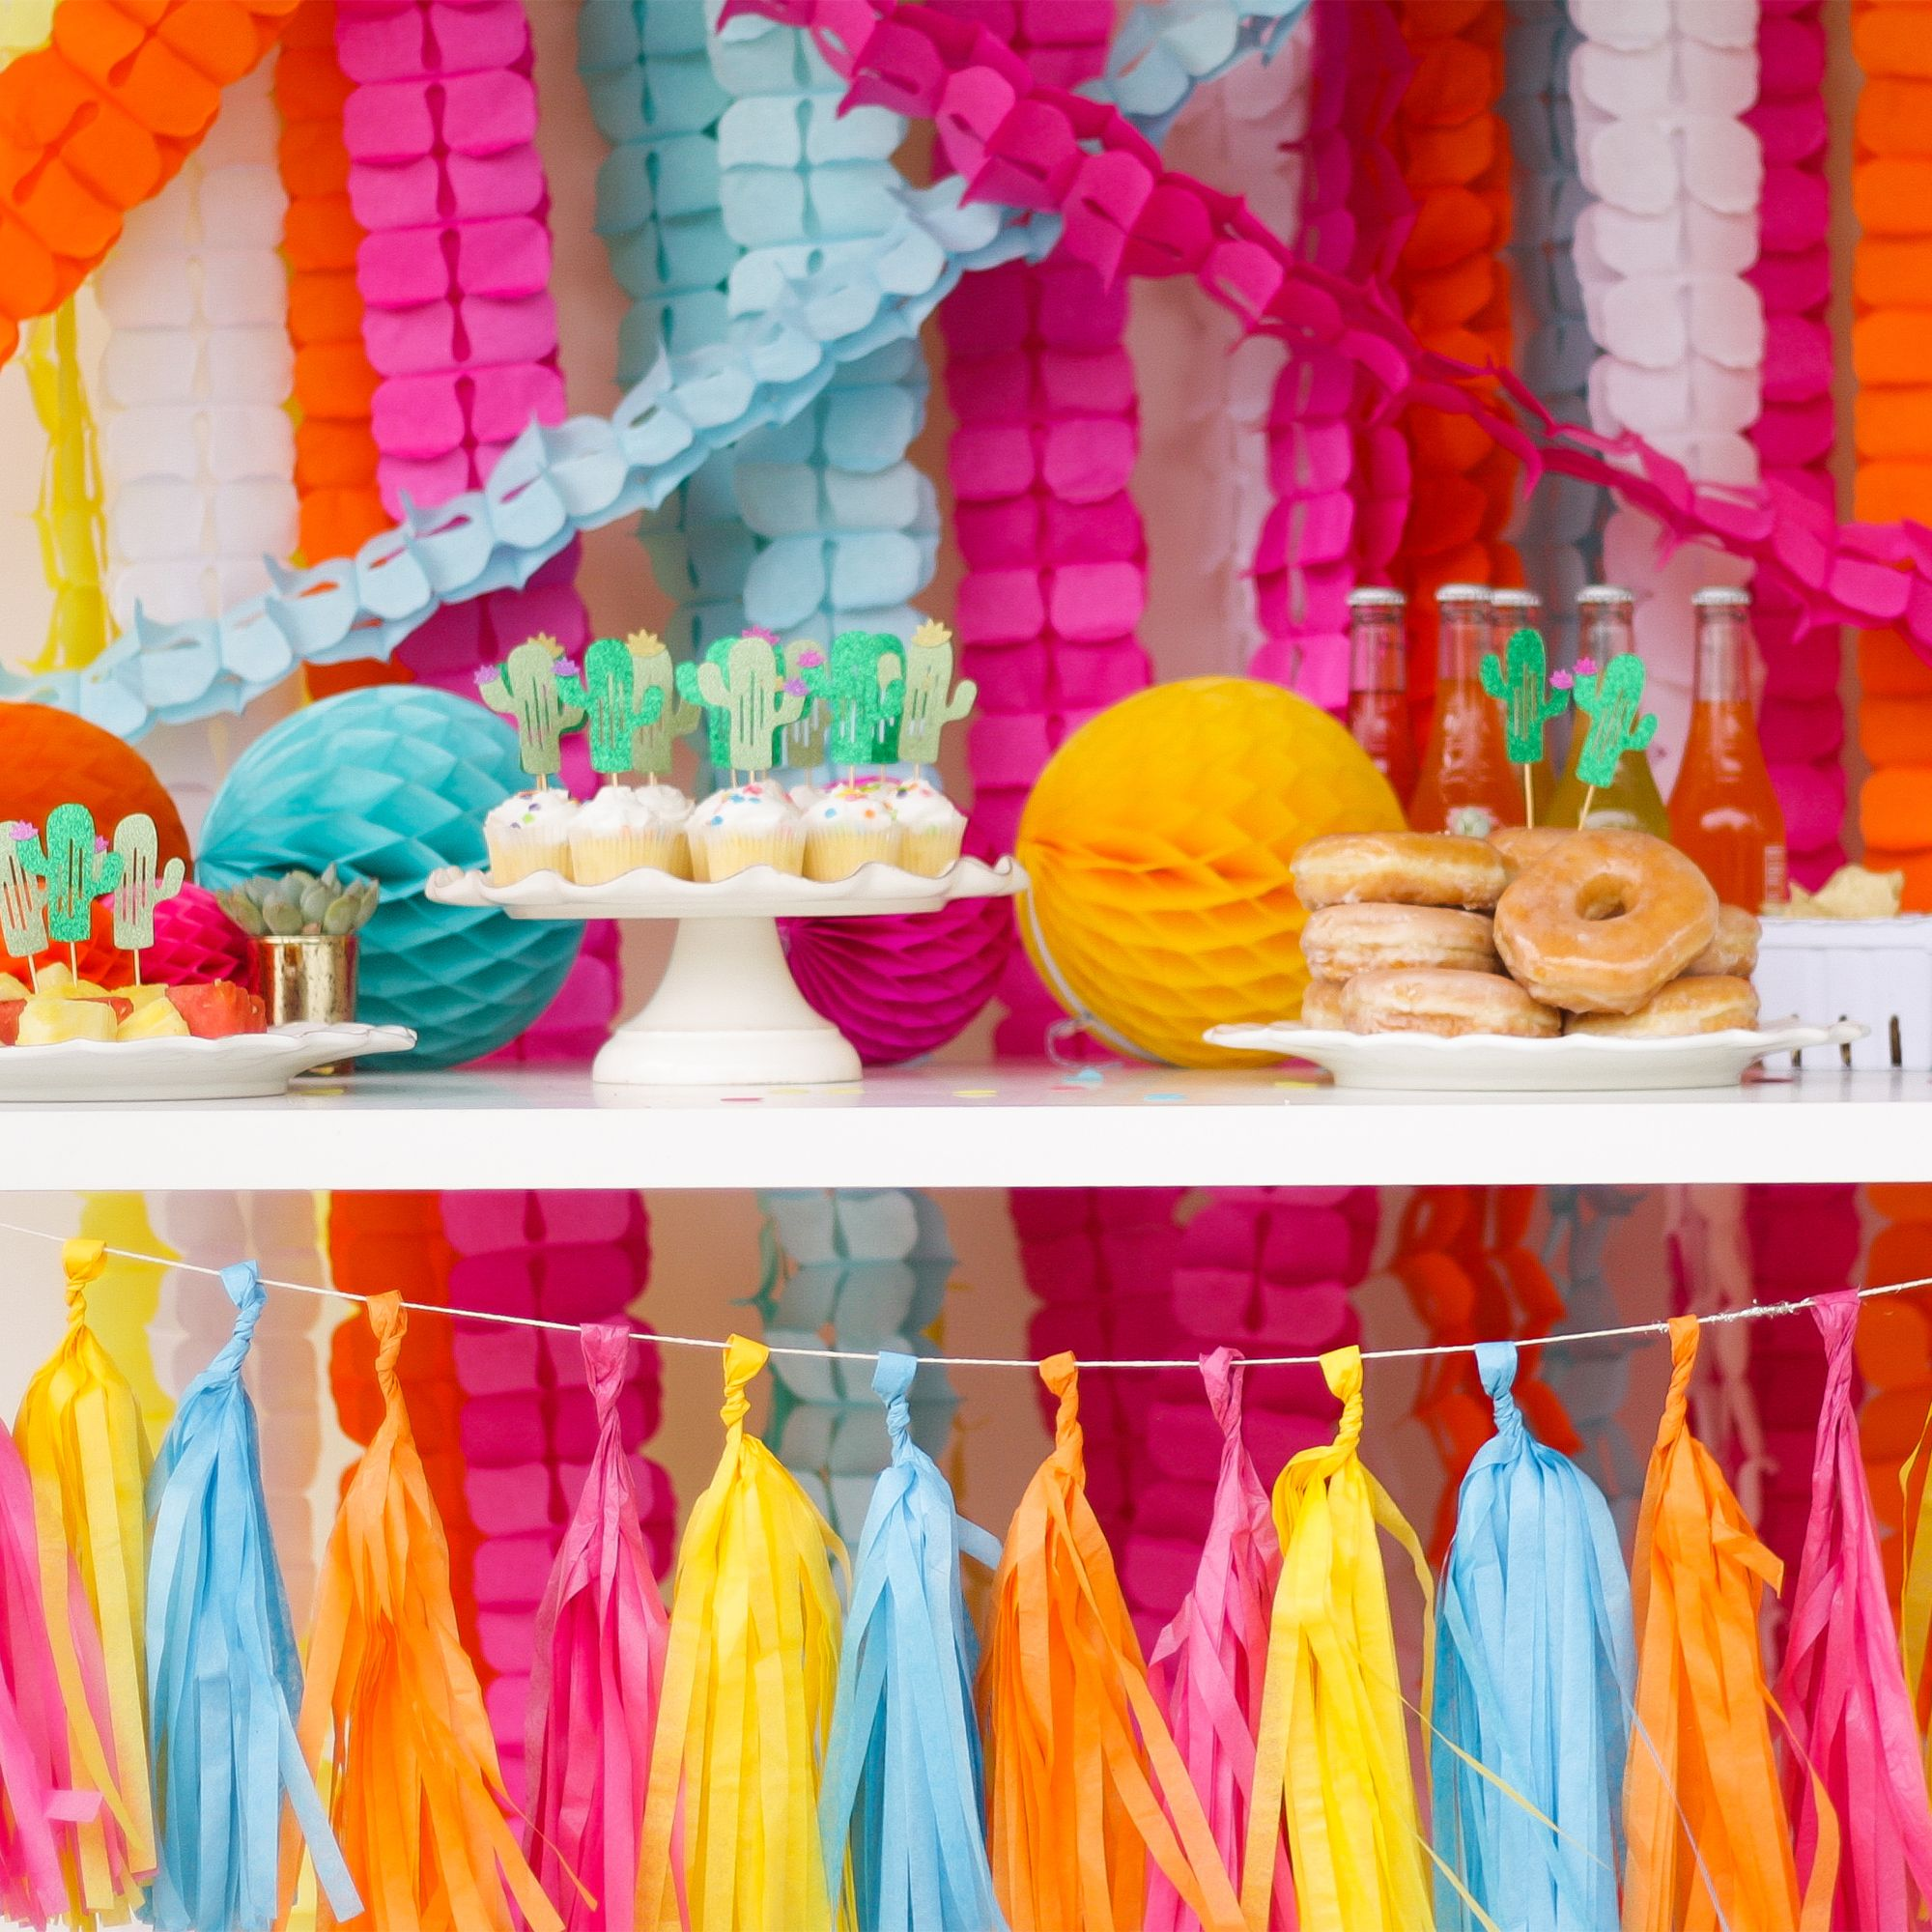 Colorful tassel garlands are an easy way to decorate for